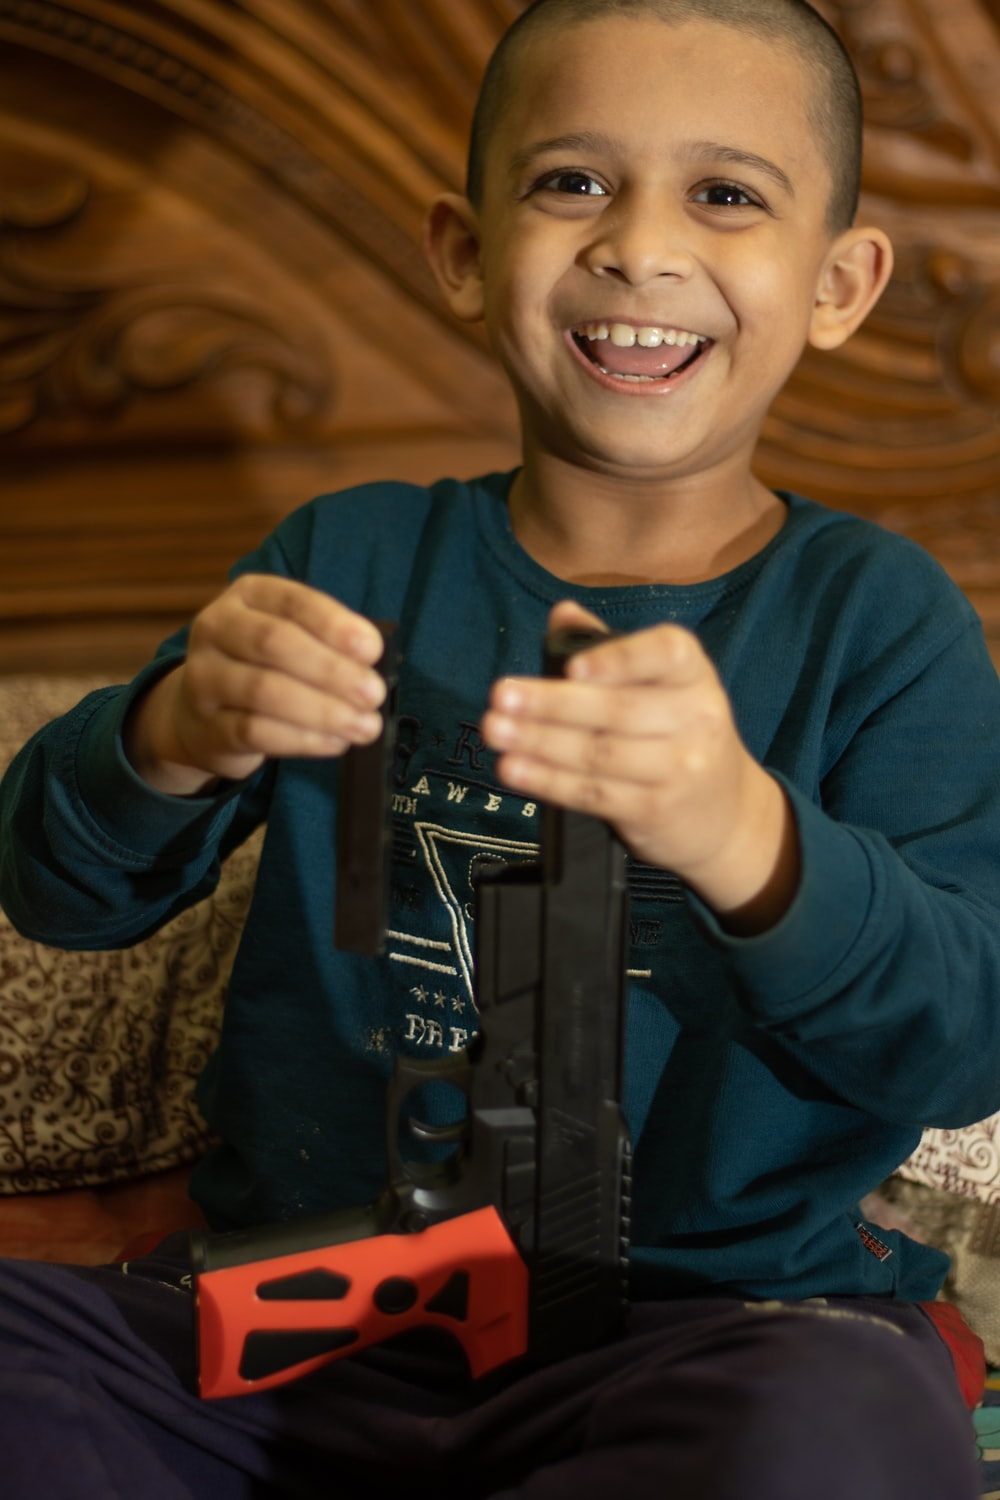 boy in blue sweater holding black rifle toy